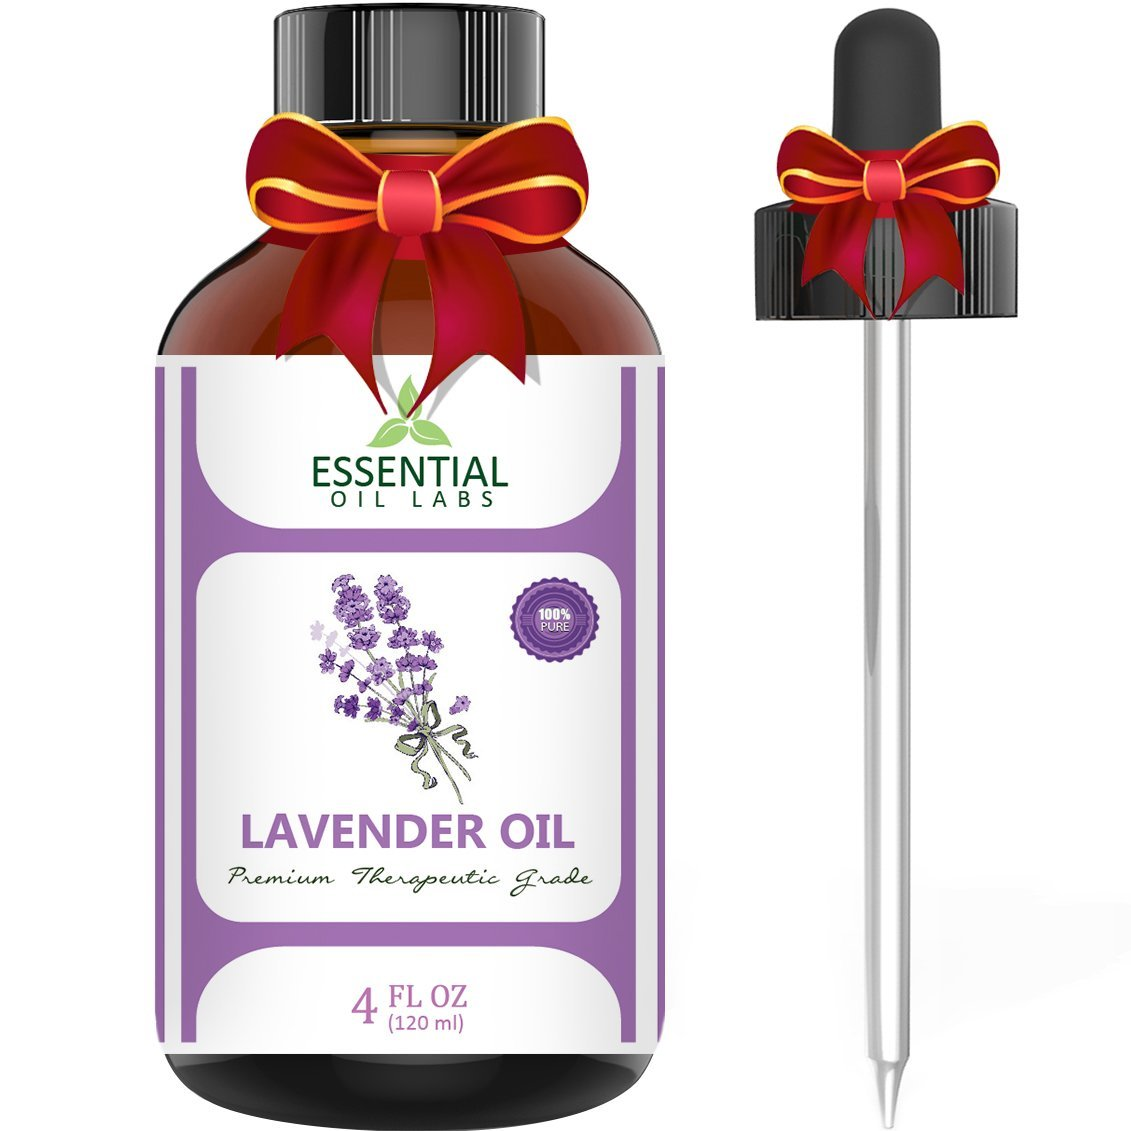 Lavender Essential Oil - Highest Quality Therapeutic Grade Backed by Research - Largest 4 Oz Bottle with Premium Glass Dropper - 100% Pure and Natural - Guaranteed Results - Essential Labs by Essential Oil Labs (Image #1)